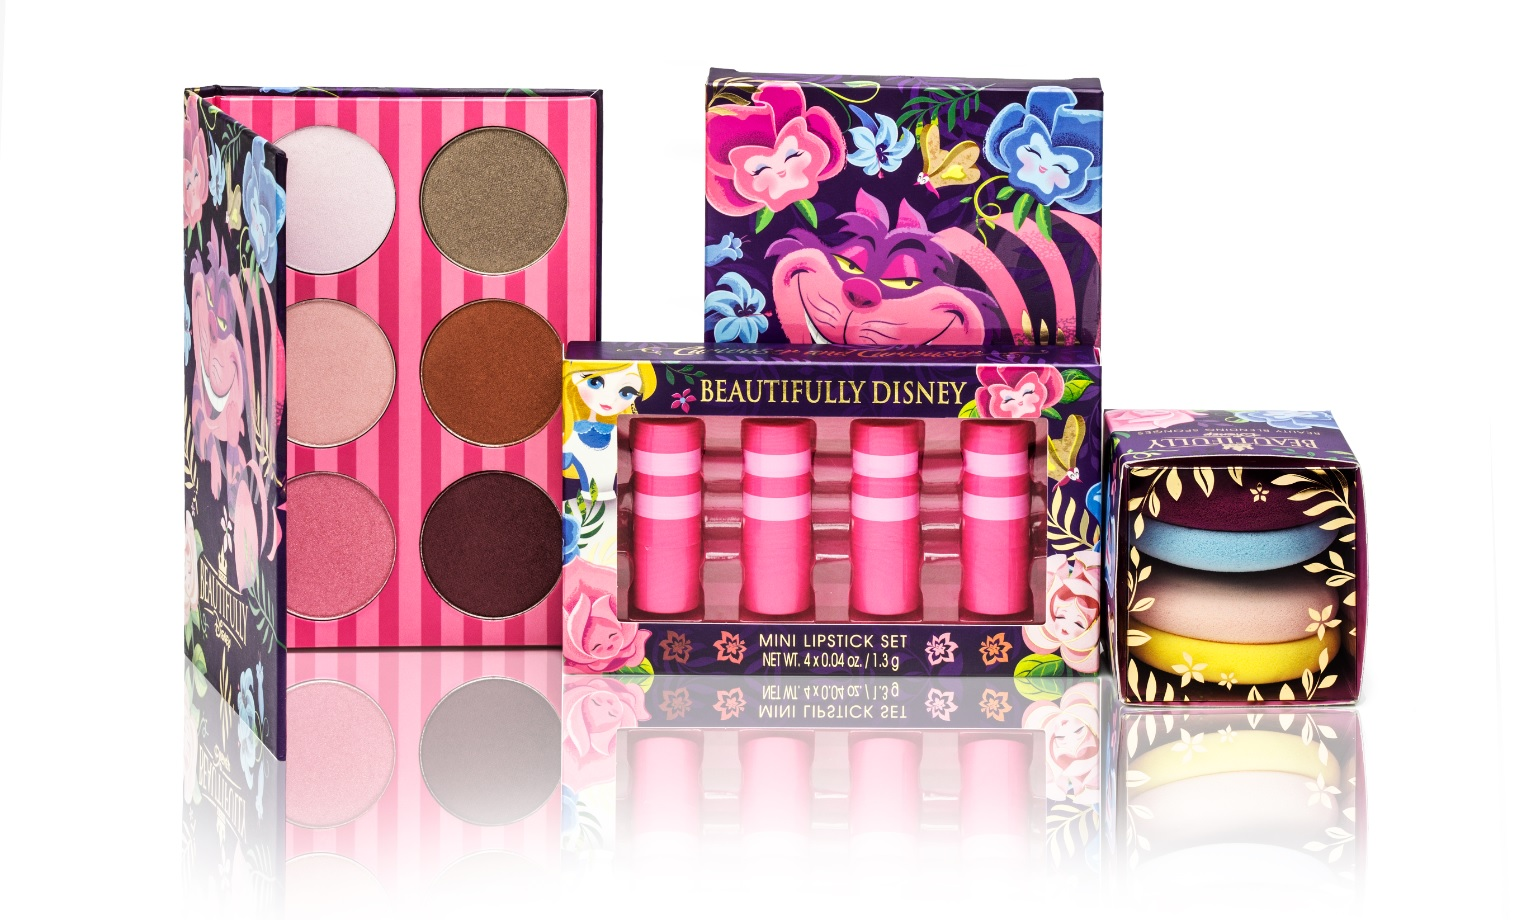 Curiouser And Curiouser Beautifully Disney Line Debuts May